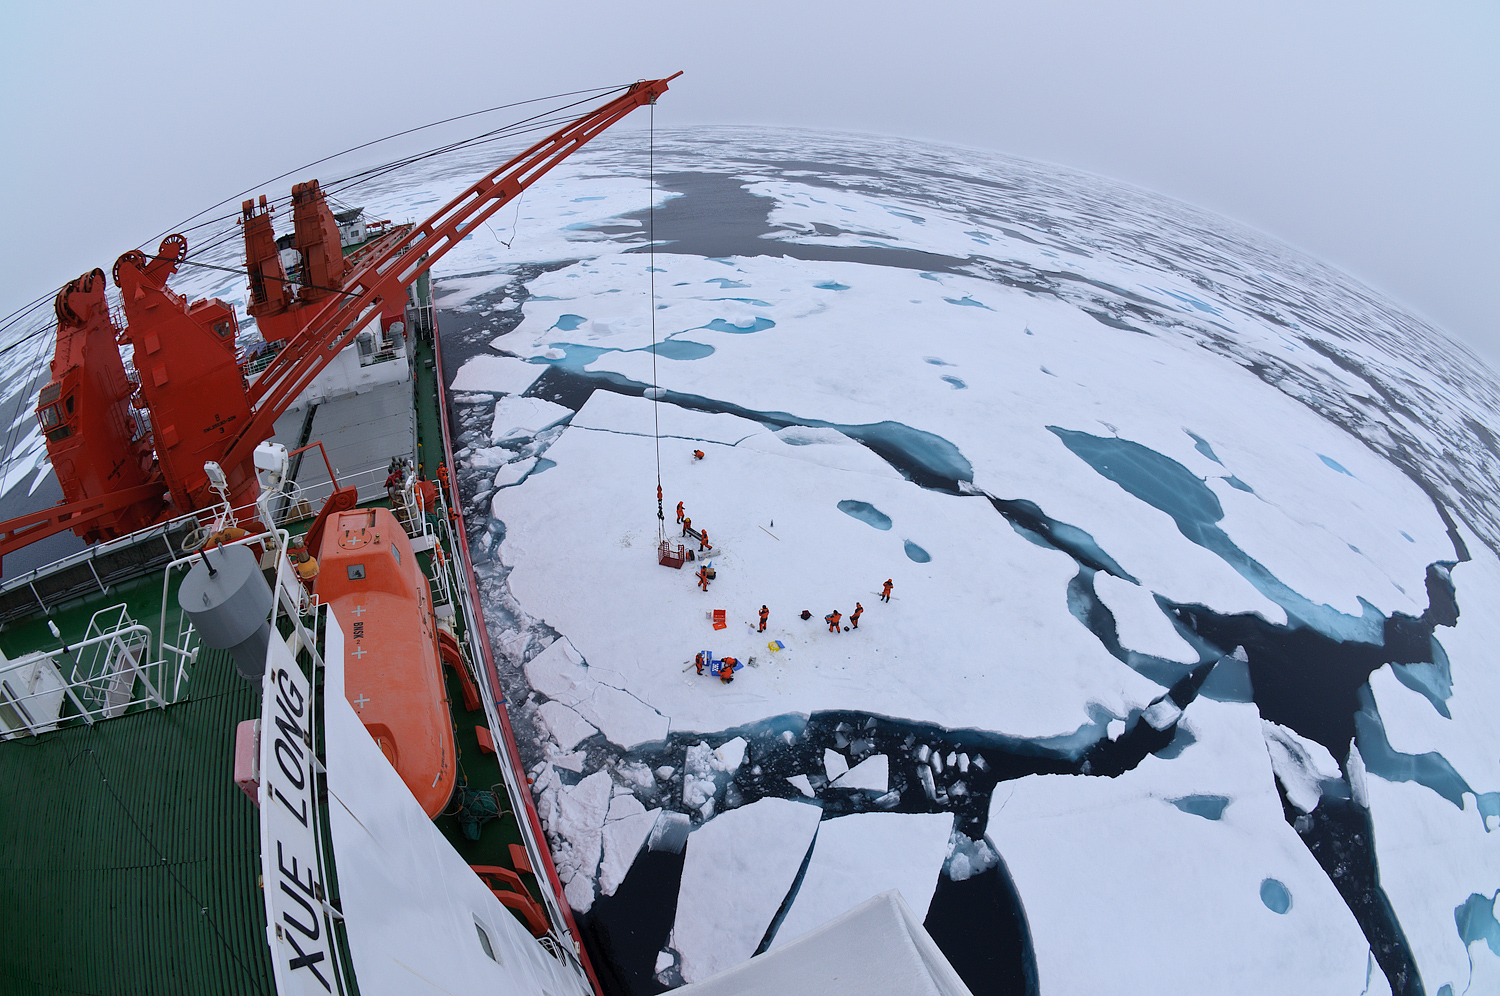 """China's icebreaker Xuelong, or """"Snow Dragon,"""" works alongside a drift ice camp in the Arctic Ocean in 2010. (Timo Palo / CC via Wikimedia Commons)"""